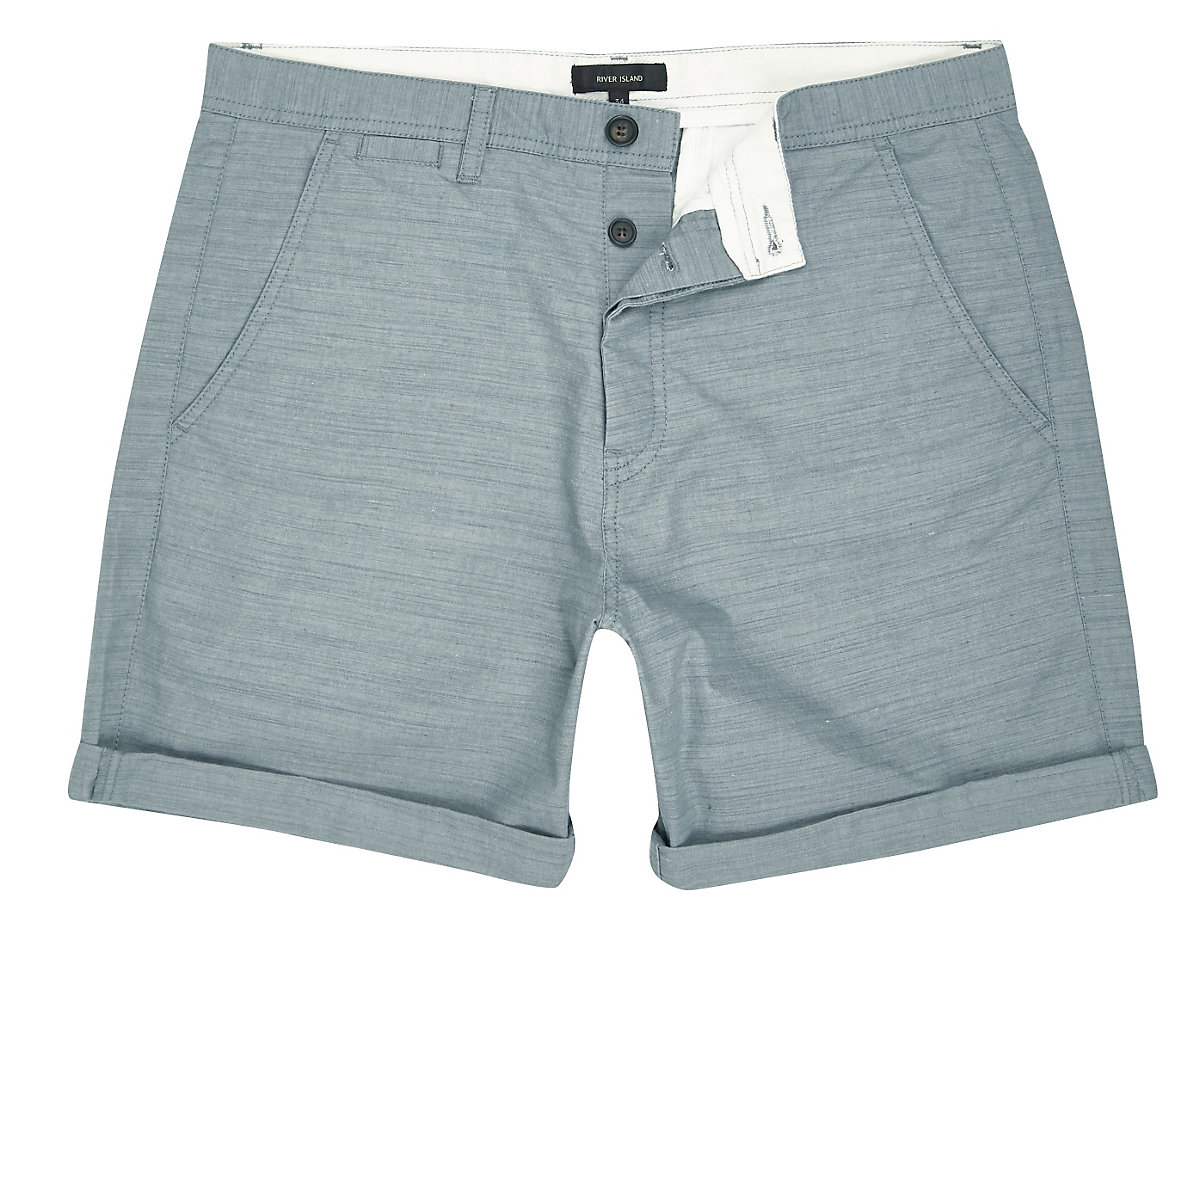 Green textured slim fit shorts